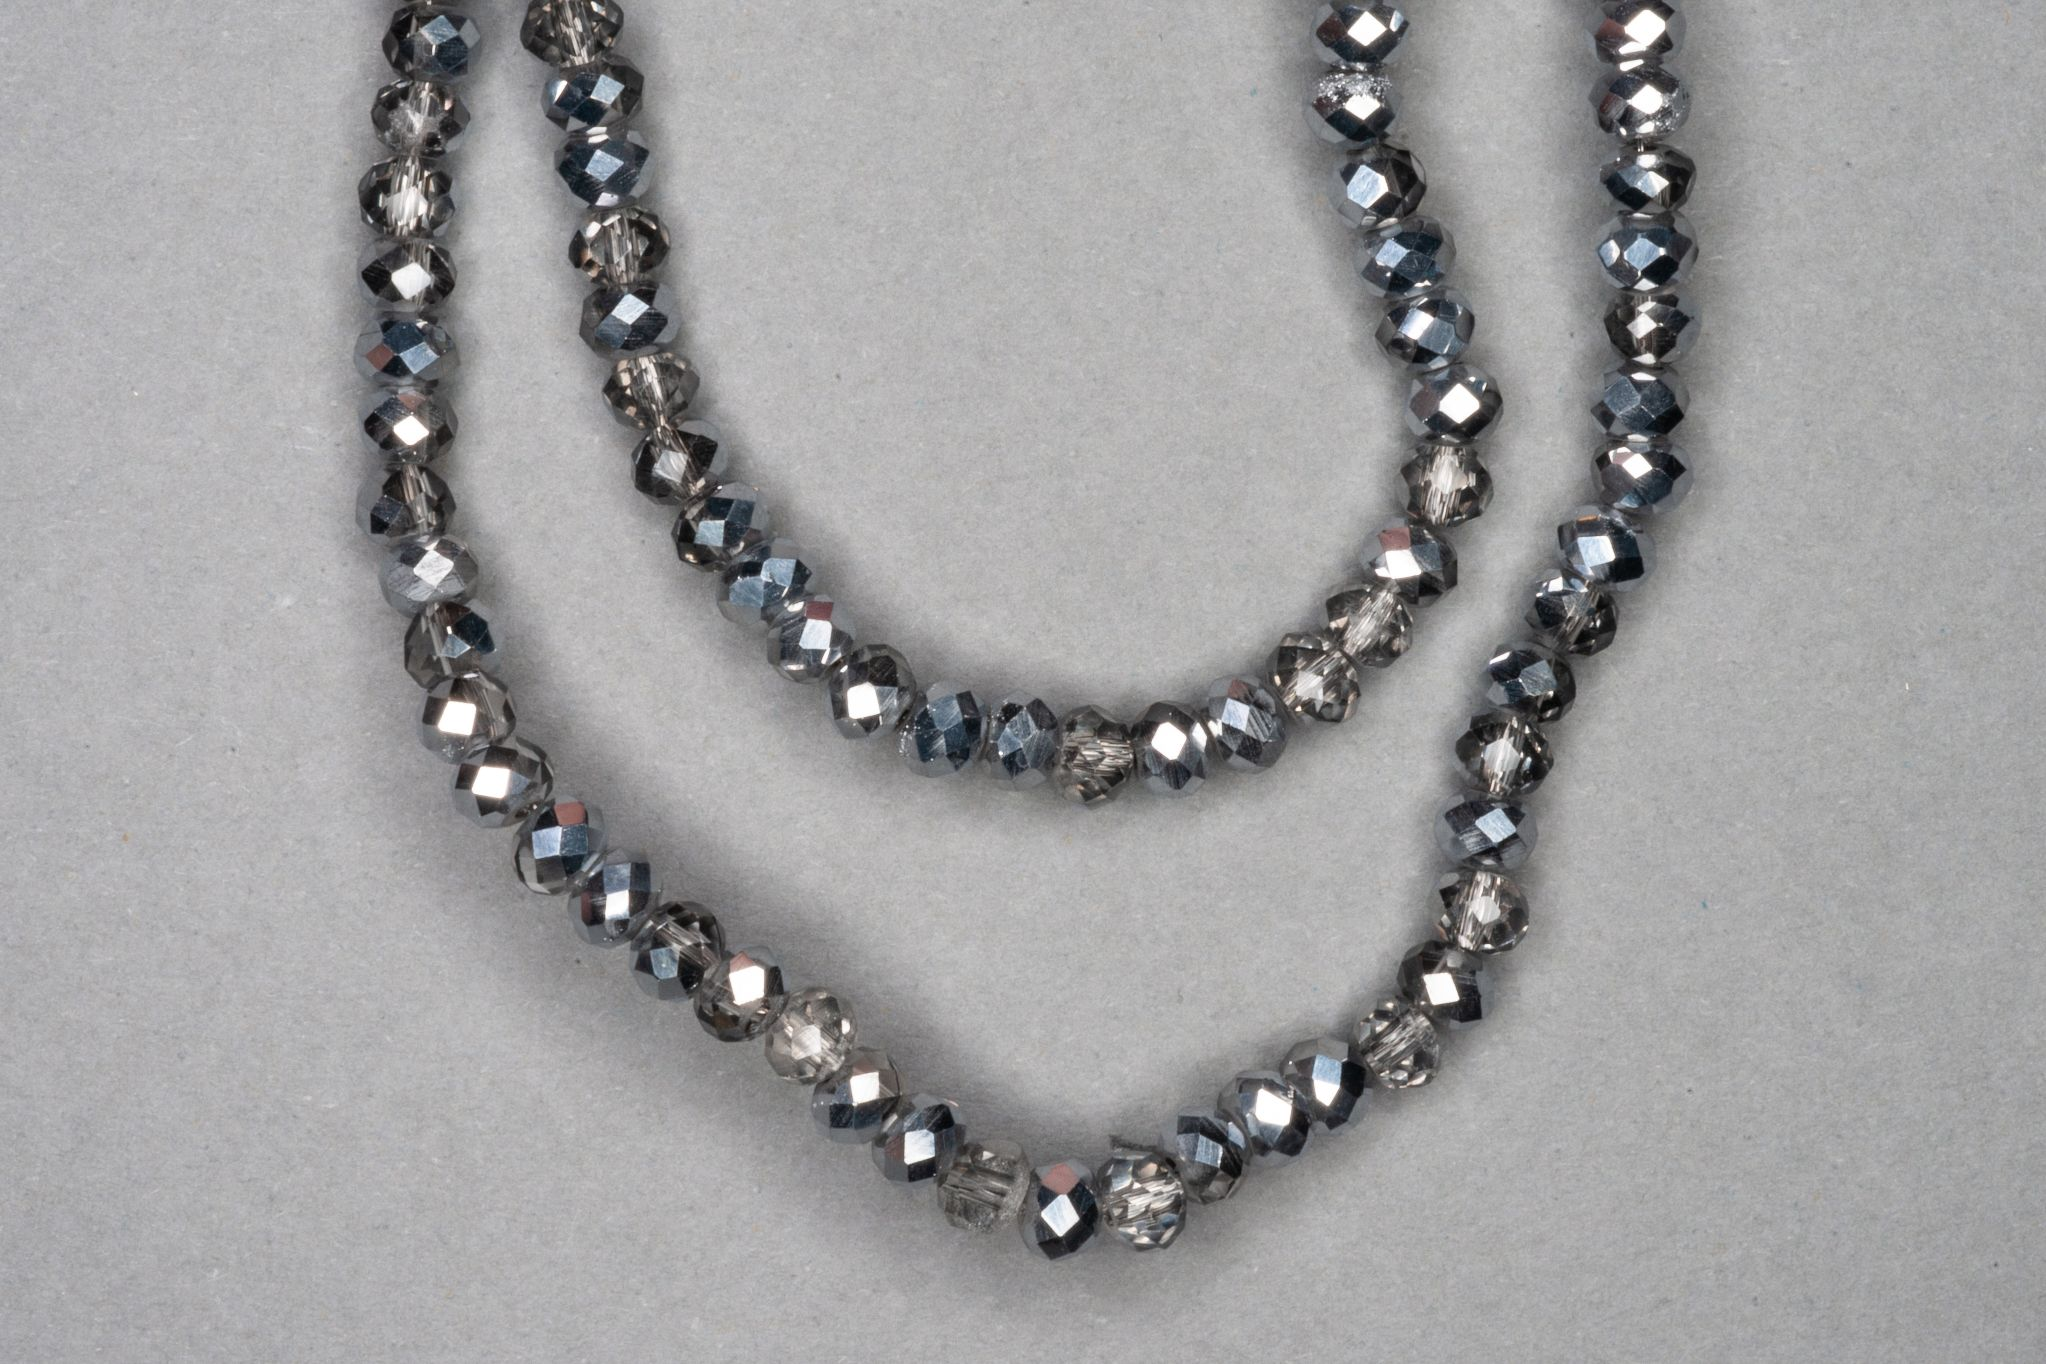 Silver/Grey Faceted Glass Beads